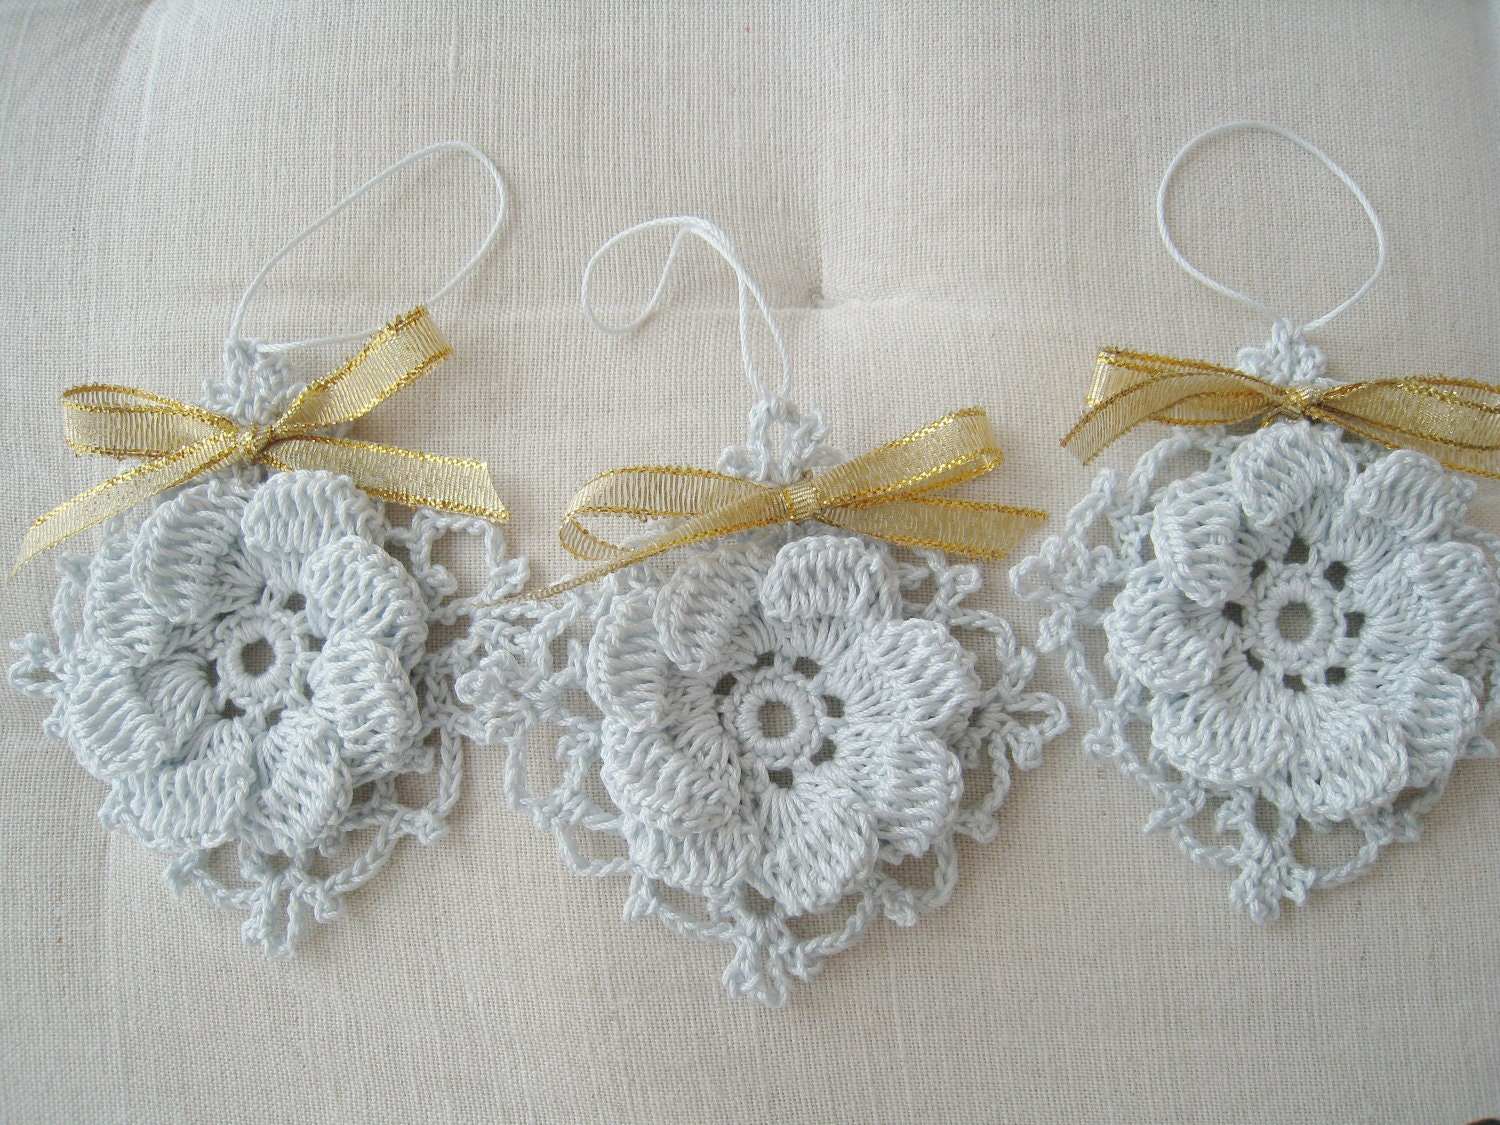 Contemporary crochet ornaments modern wall art decor by for Contemporary ornaments for the home